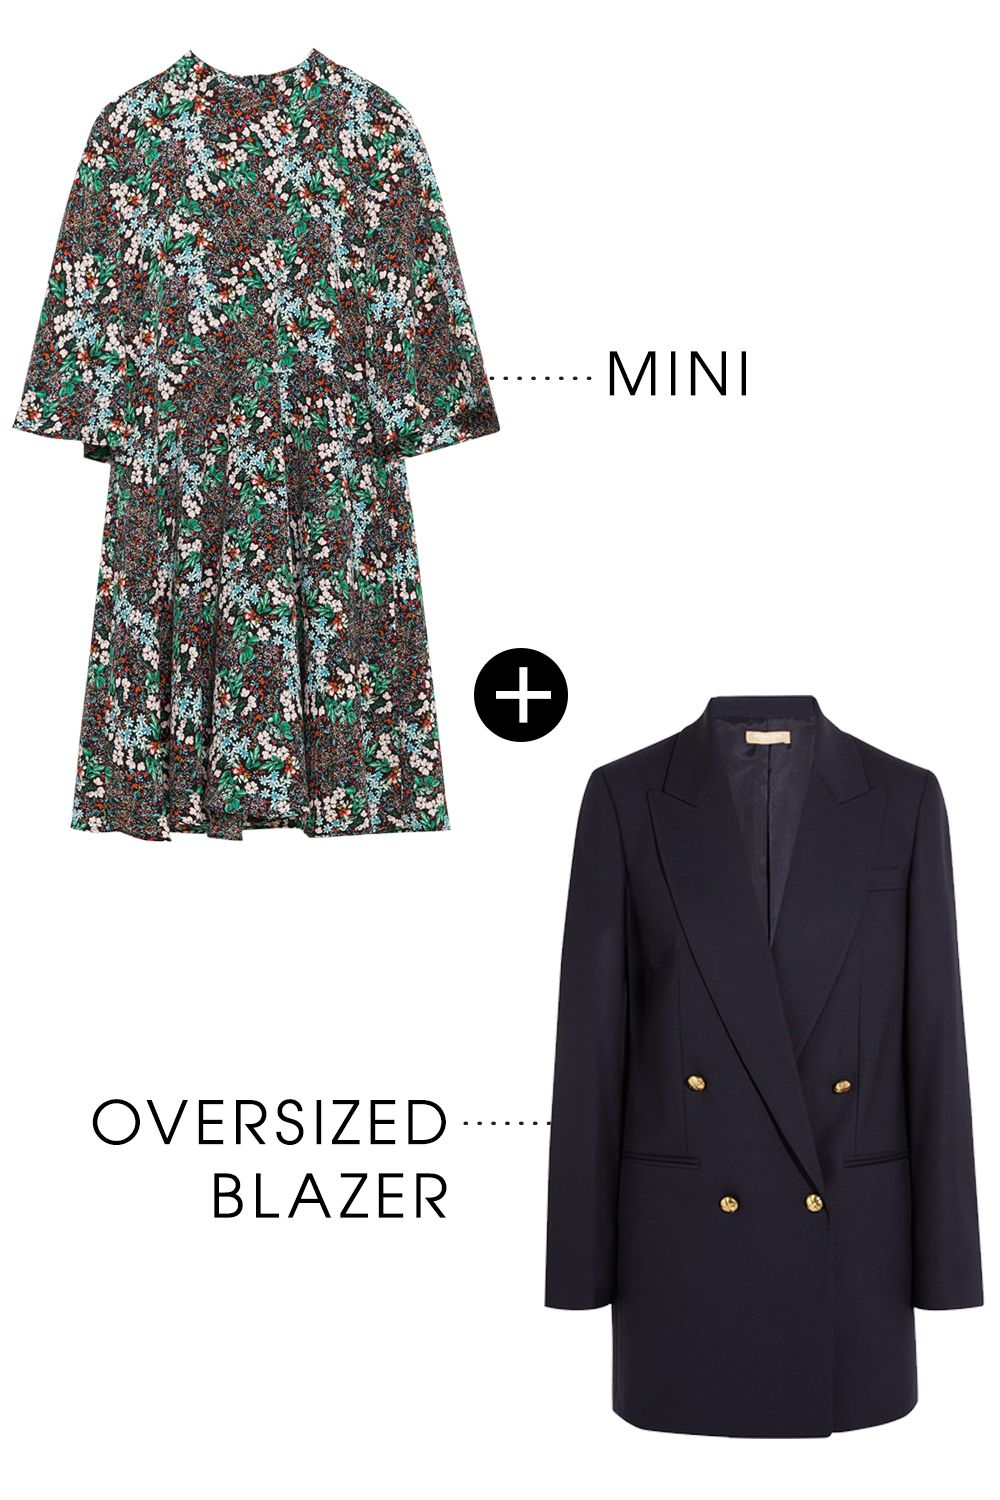 """<p>An oversized blazer is wardrobe staple that works across season season. Use it to play with proportion, like pairing a mini dress with a larger sweater or jacket, for a no-fail layering trick.</p><p>Zara Multicolor Dress with Flared Sleeves, $50&#x3B; <a href=""""http://www.zara.com/us/en/woman/dresses/view-all/multicolored-dress-with-flared-sleeves-c733885p3026544.html"""">zara.com</a></p><p>Michael Kors Collection Stretch Wool Gaberdine Blazer, $1,250&#x3B; <a href=""""http://rstyle.me/n/bdwxkrbc6jf"""">net-a-porter.com</a></p>"""